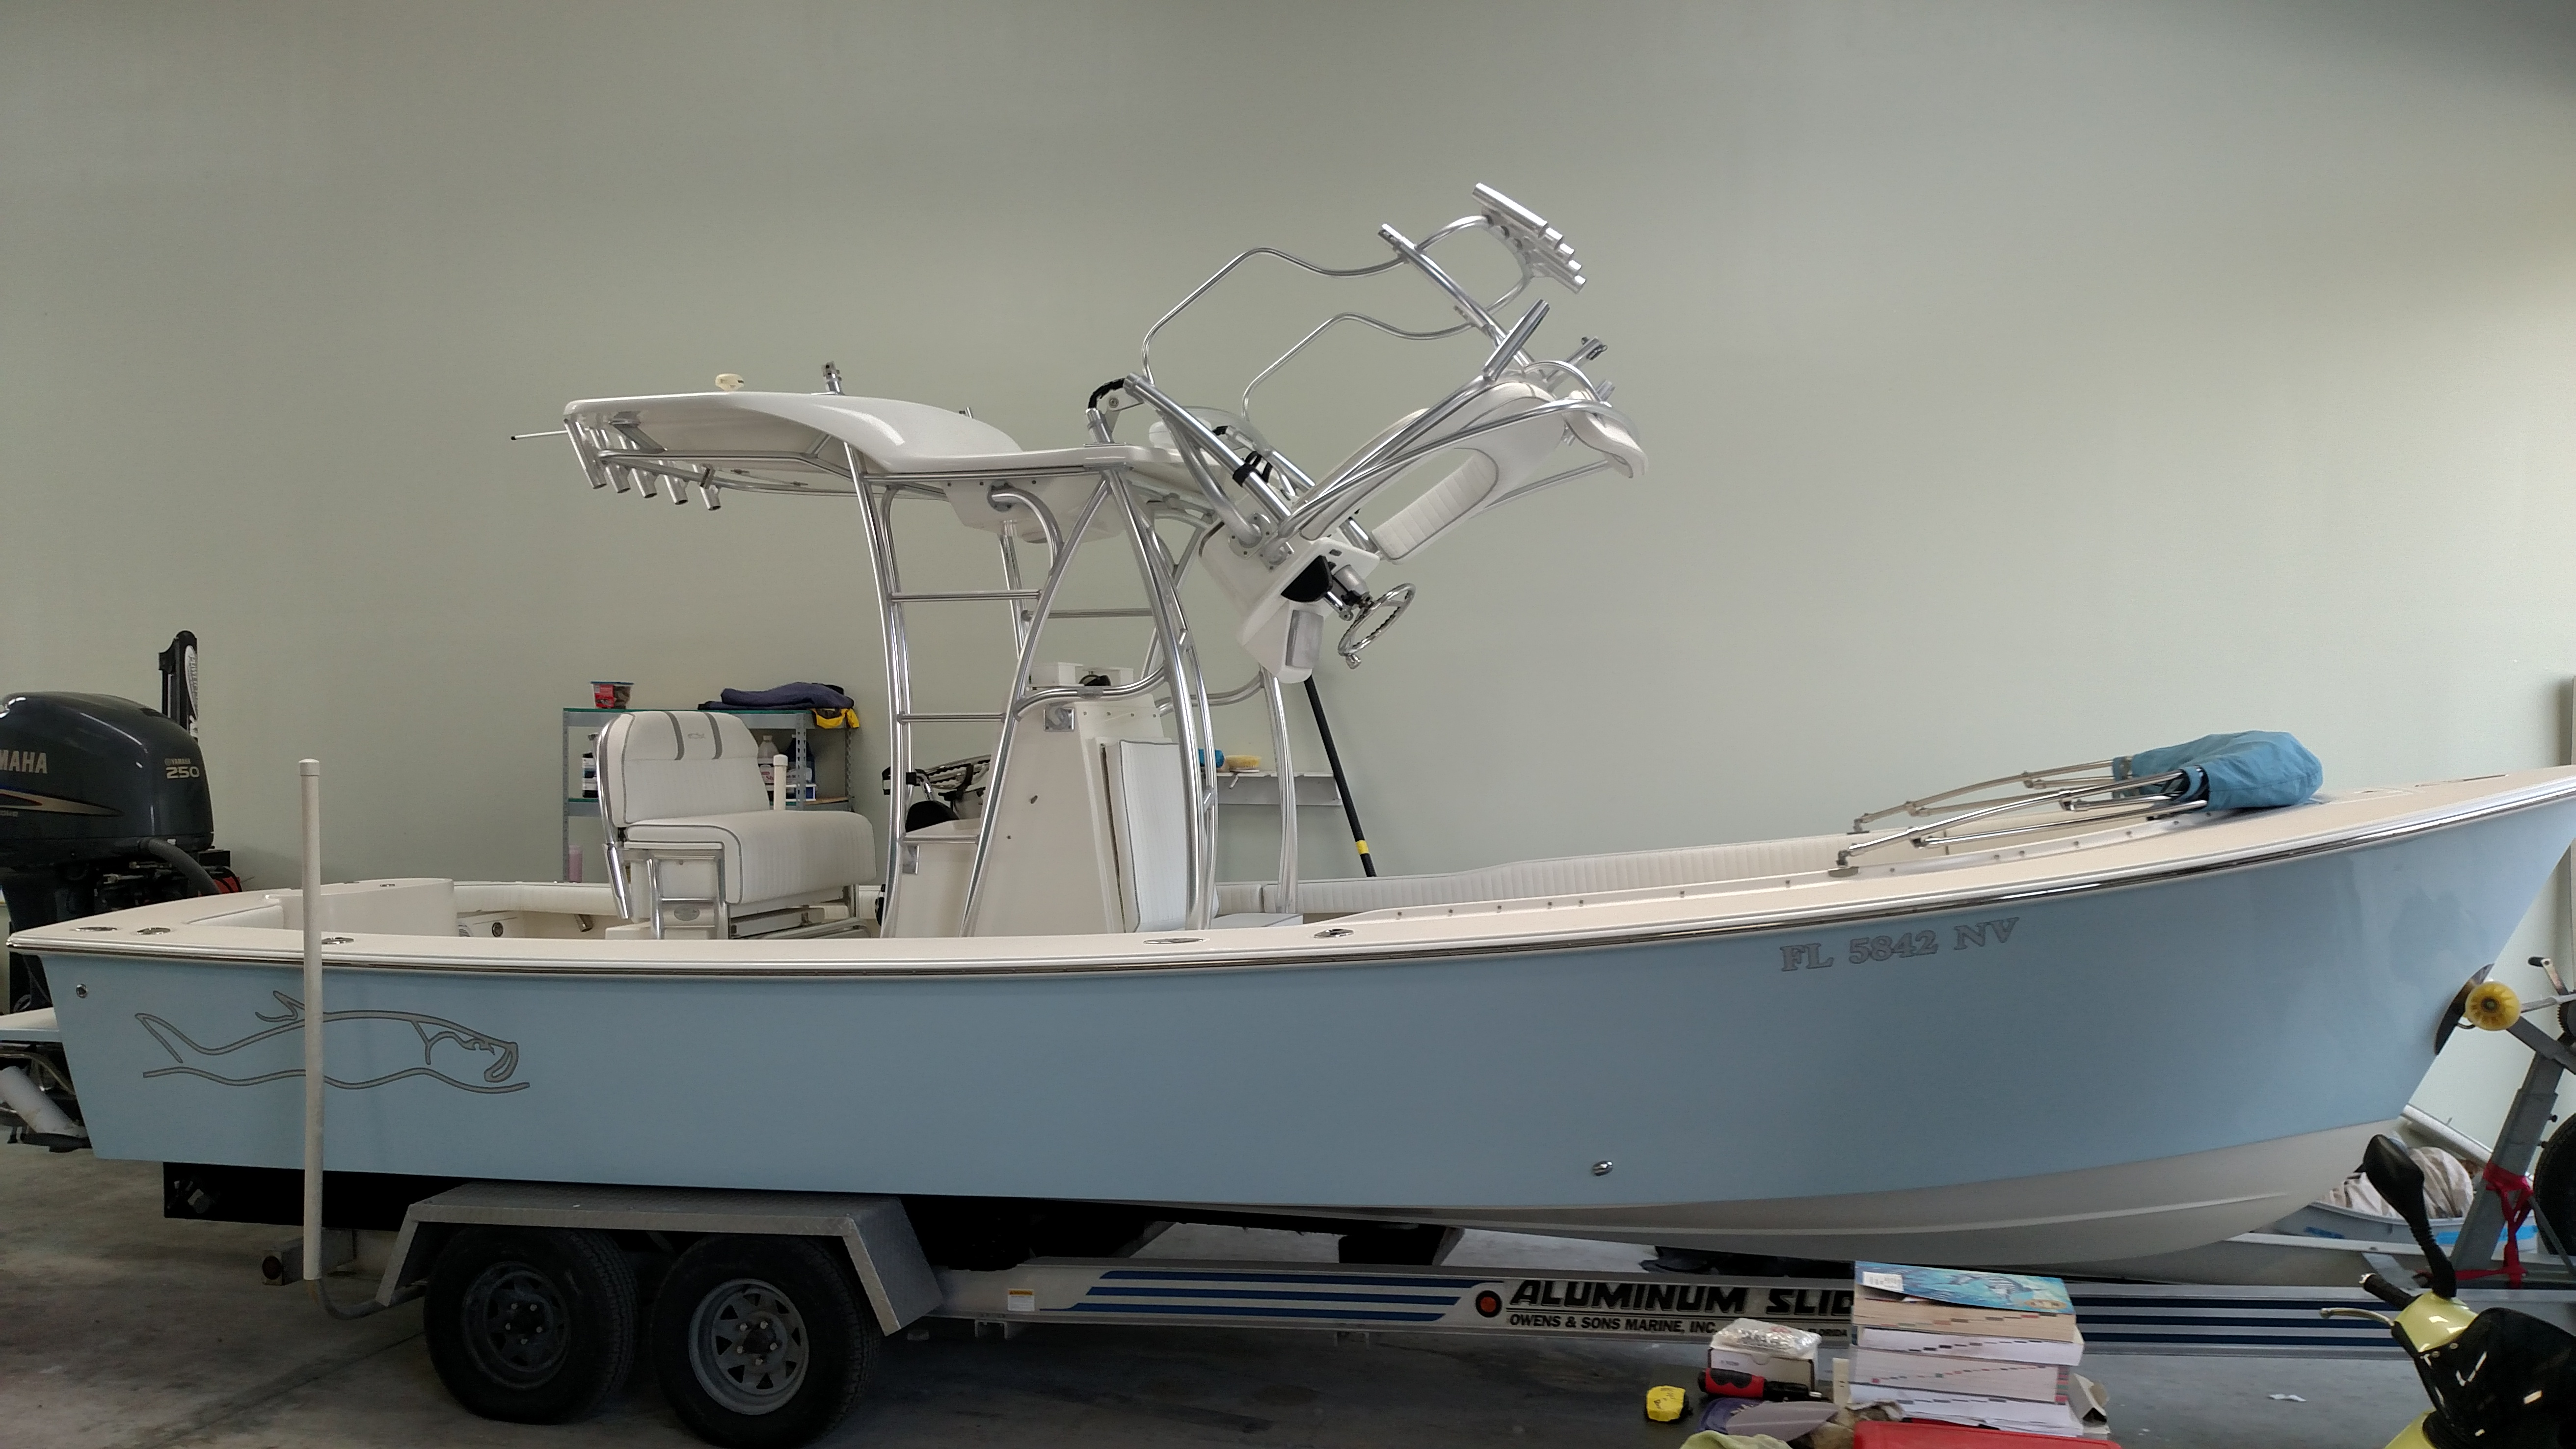 2009 Gause Built 26 - SOLD